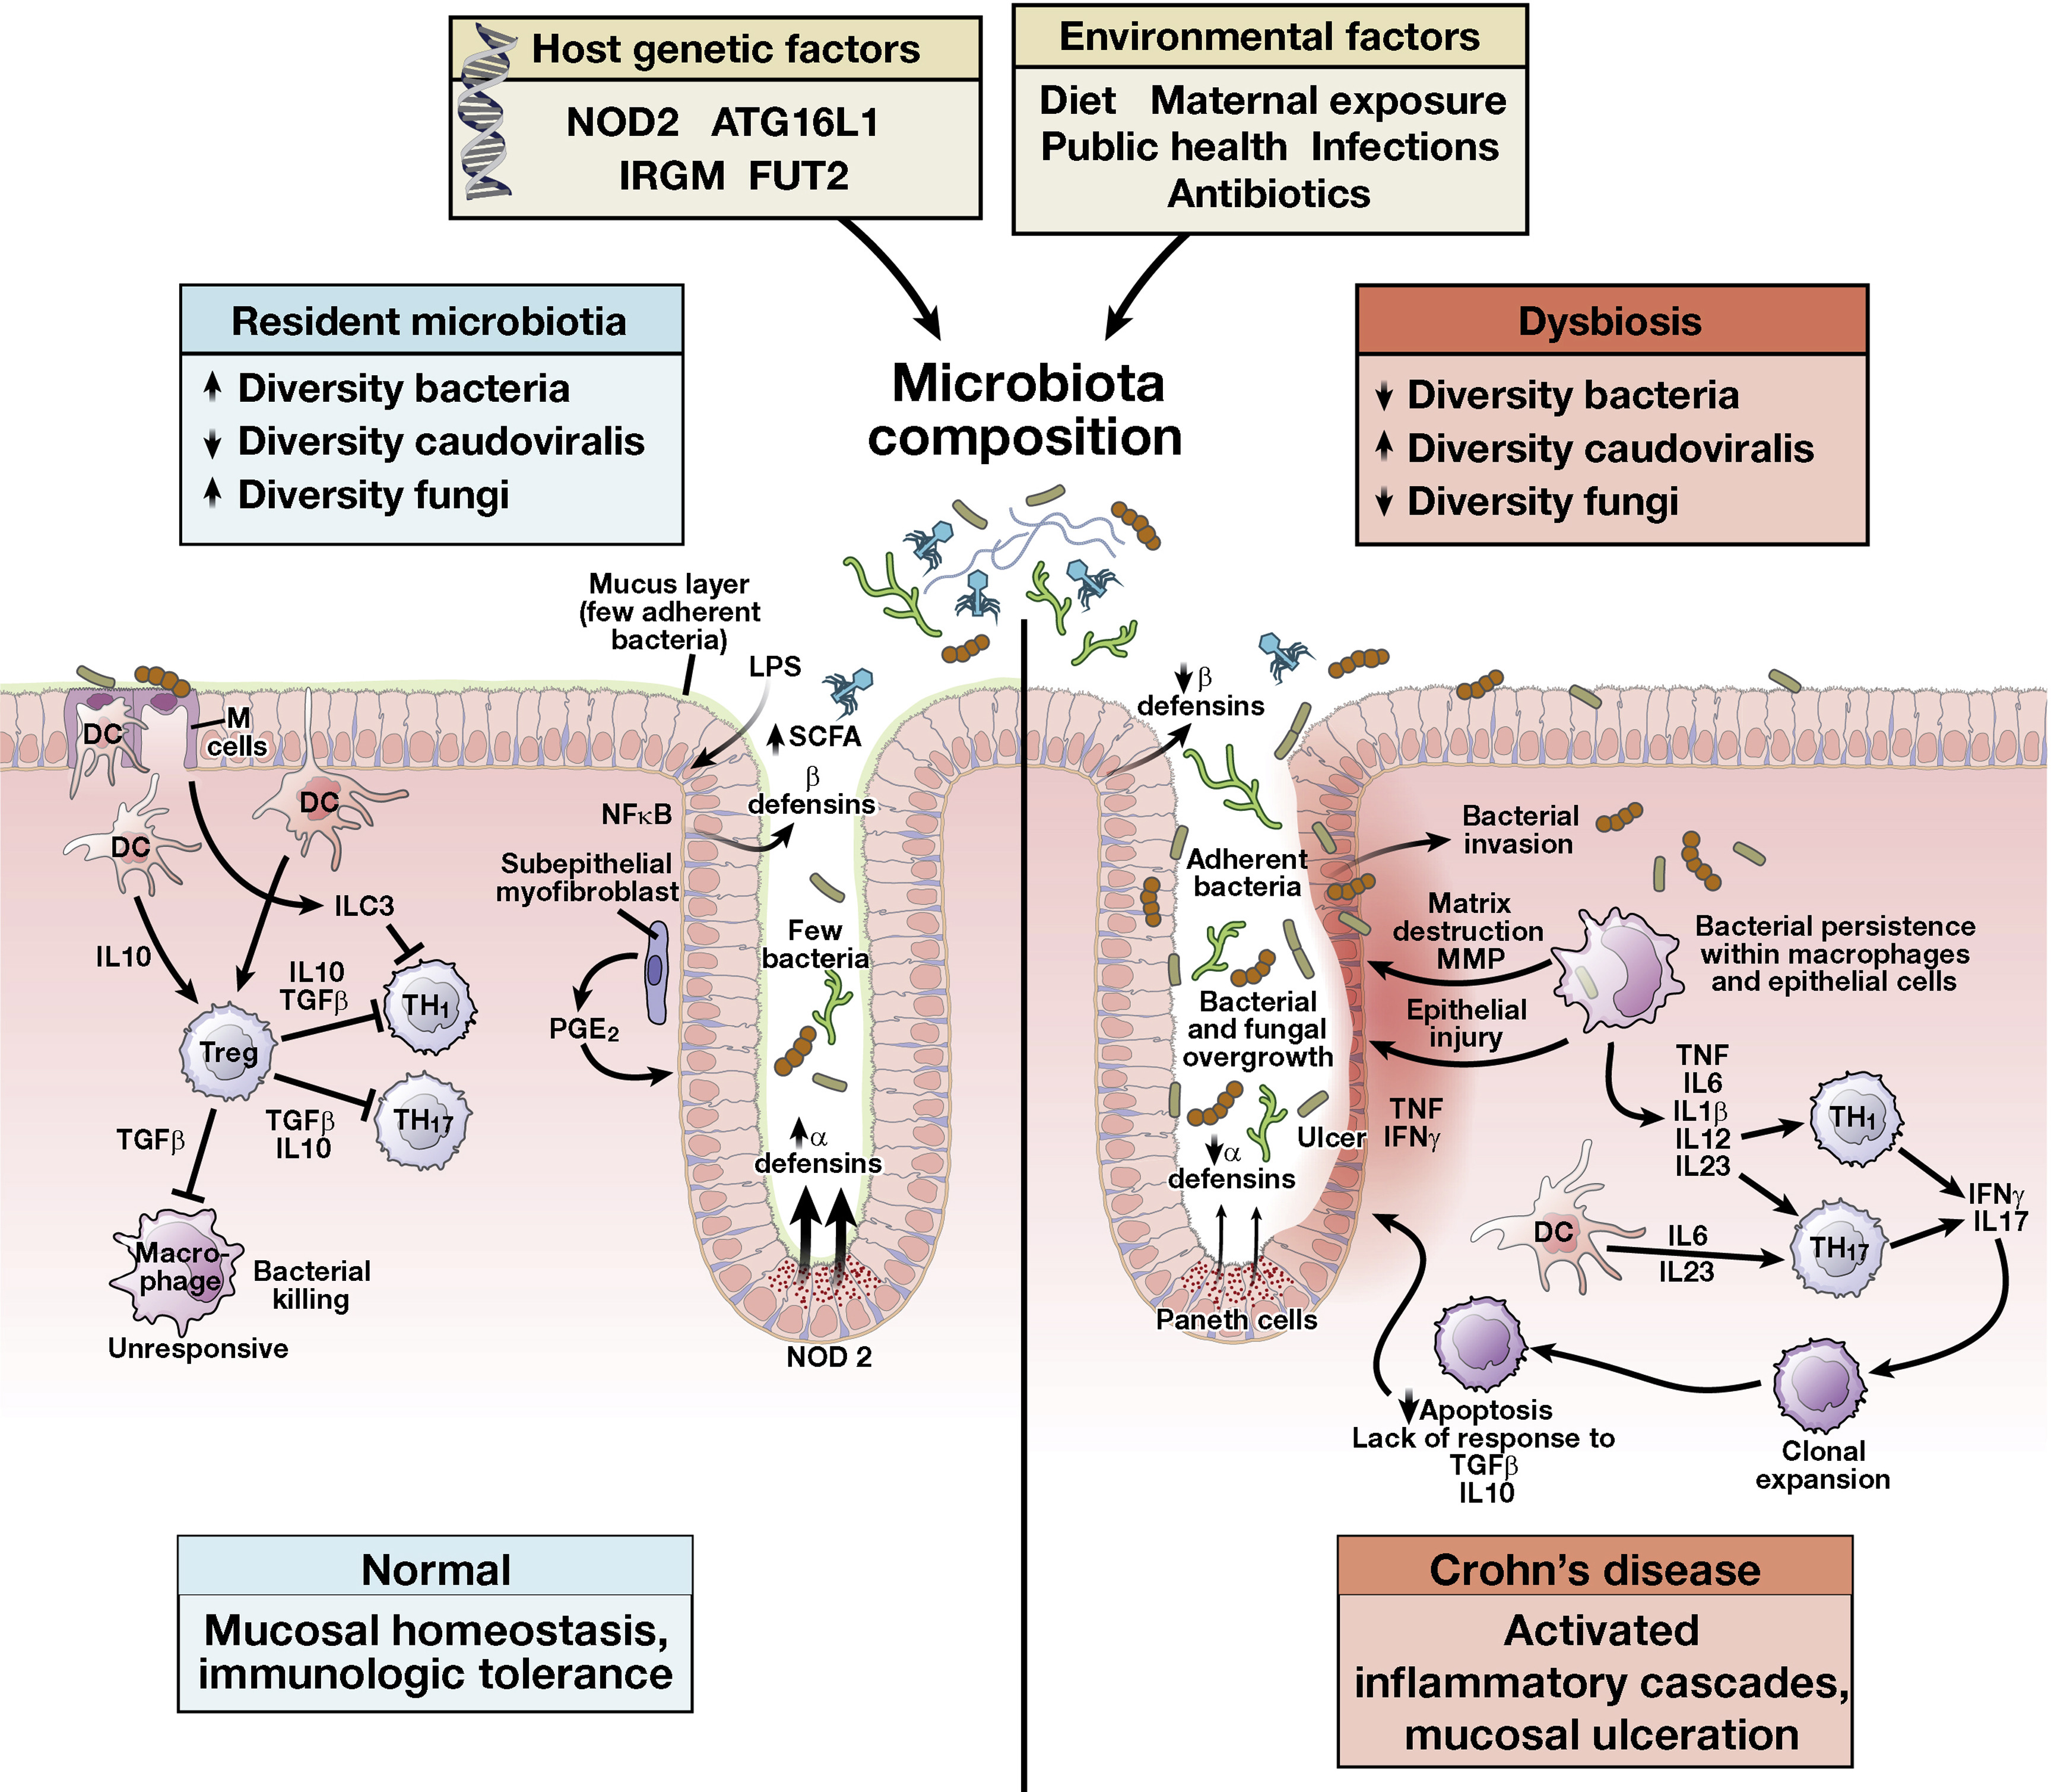 pathogenesis of inflammatory bowel disease poster Chronic diarrhea and belly pain could result from inflammatory bowel disease learn about ibd causes, diagnosis and treatment.